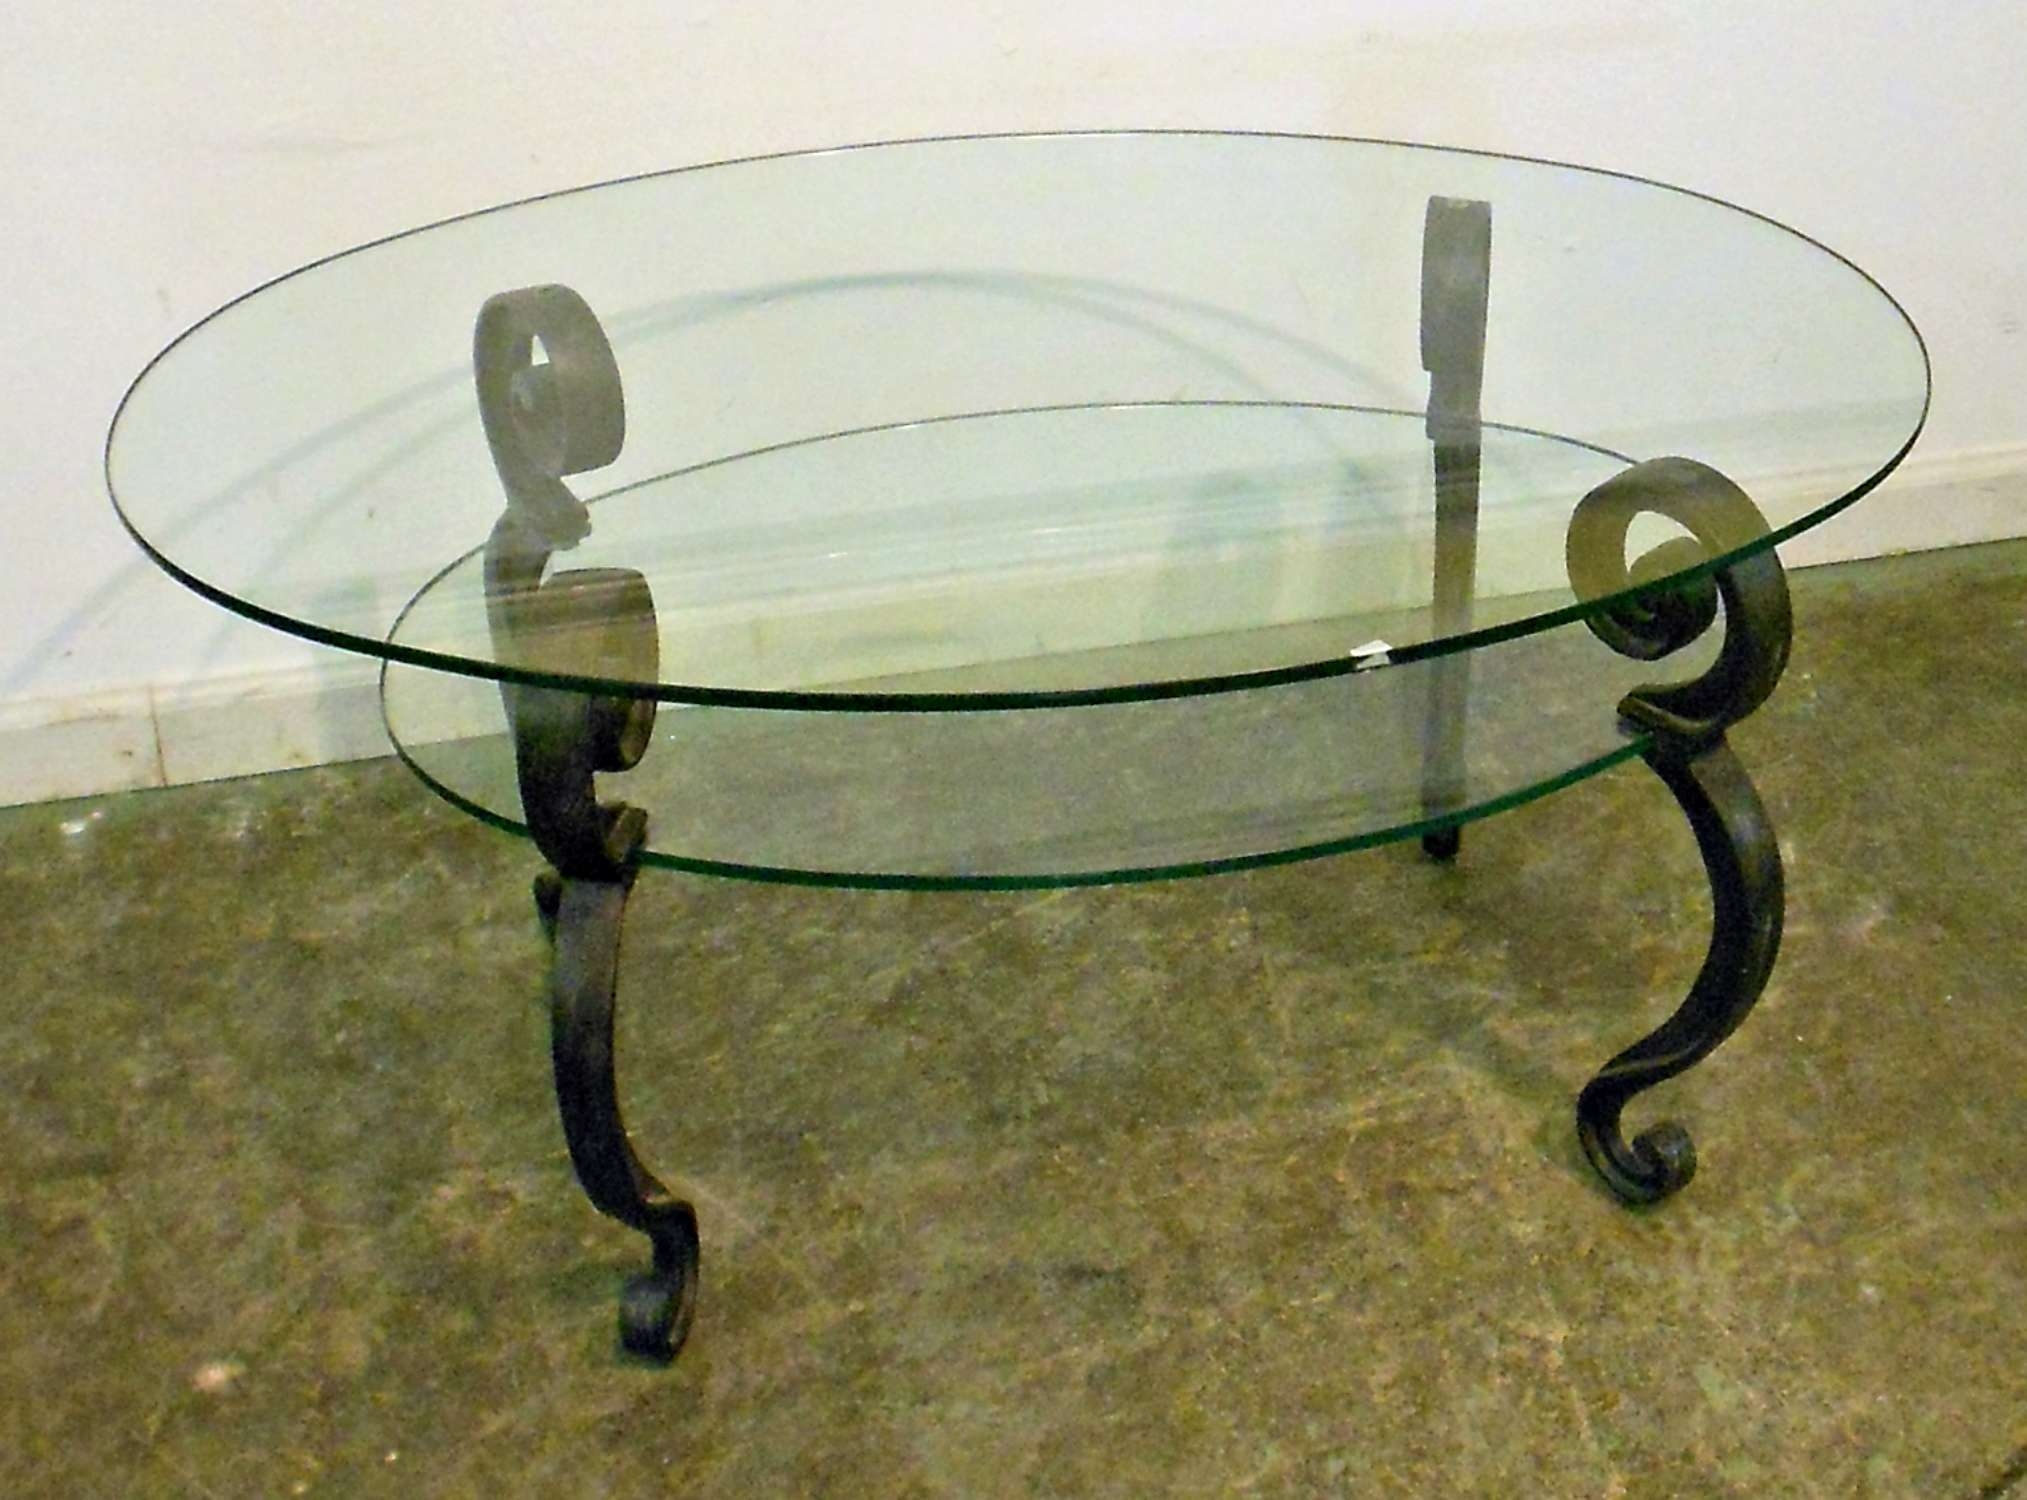 Vintage Glass Top Coffee Table With Black Metal Legs And Shelves With Regard To Popular Antique Glass Top Coffee Tables (Gallery 5 of 20)